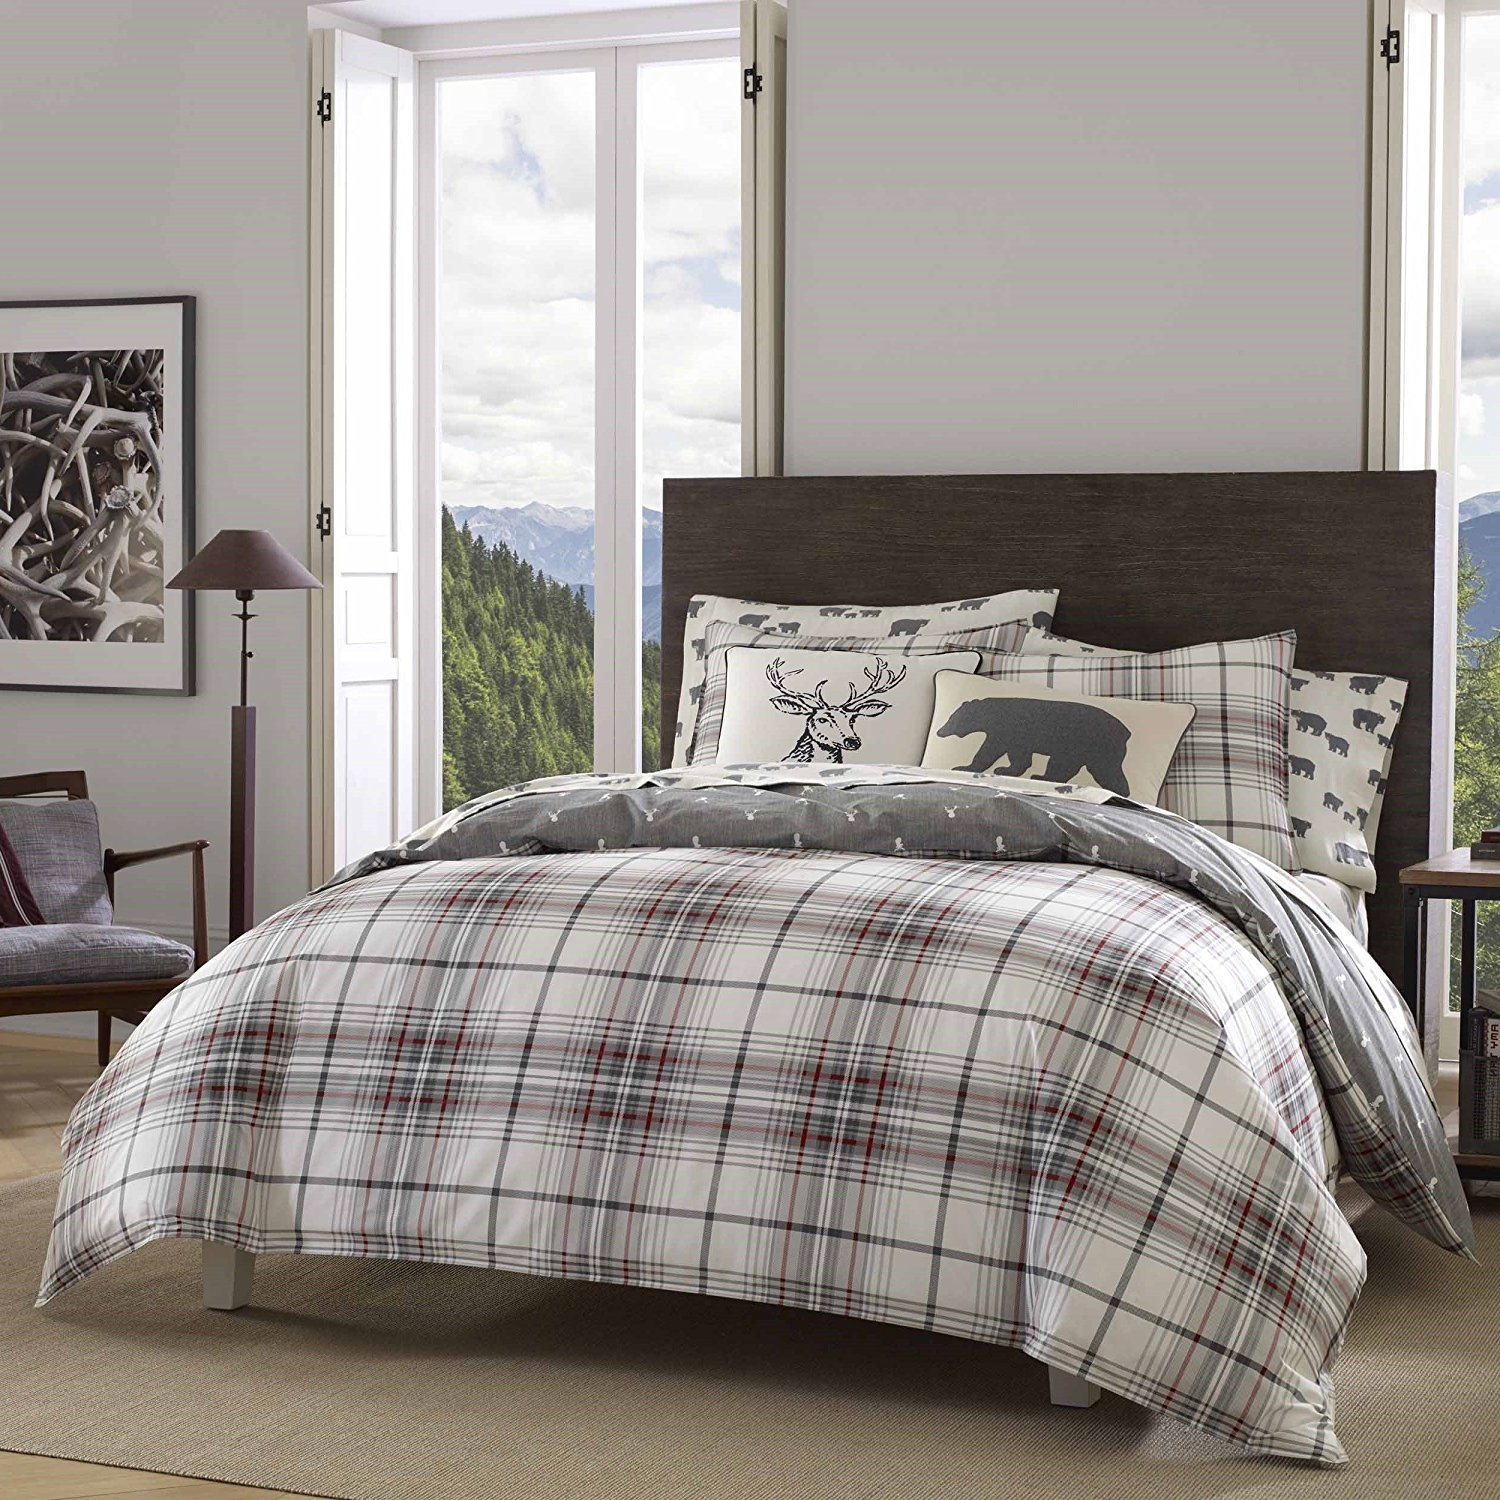 DP 3pc Grey Red White Plaid Comforter Full Queen Set, Deer Pattern Flannel Cotton, Tartan Bedding Checked Buffalo Check Classic Madras Cabin Lodge Lumberjack Hunting